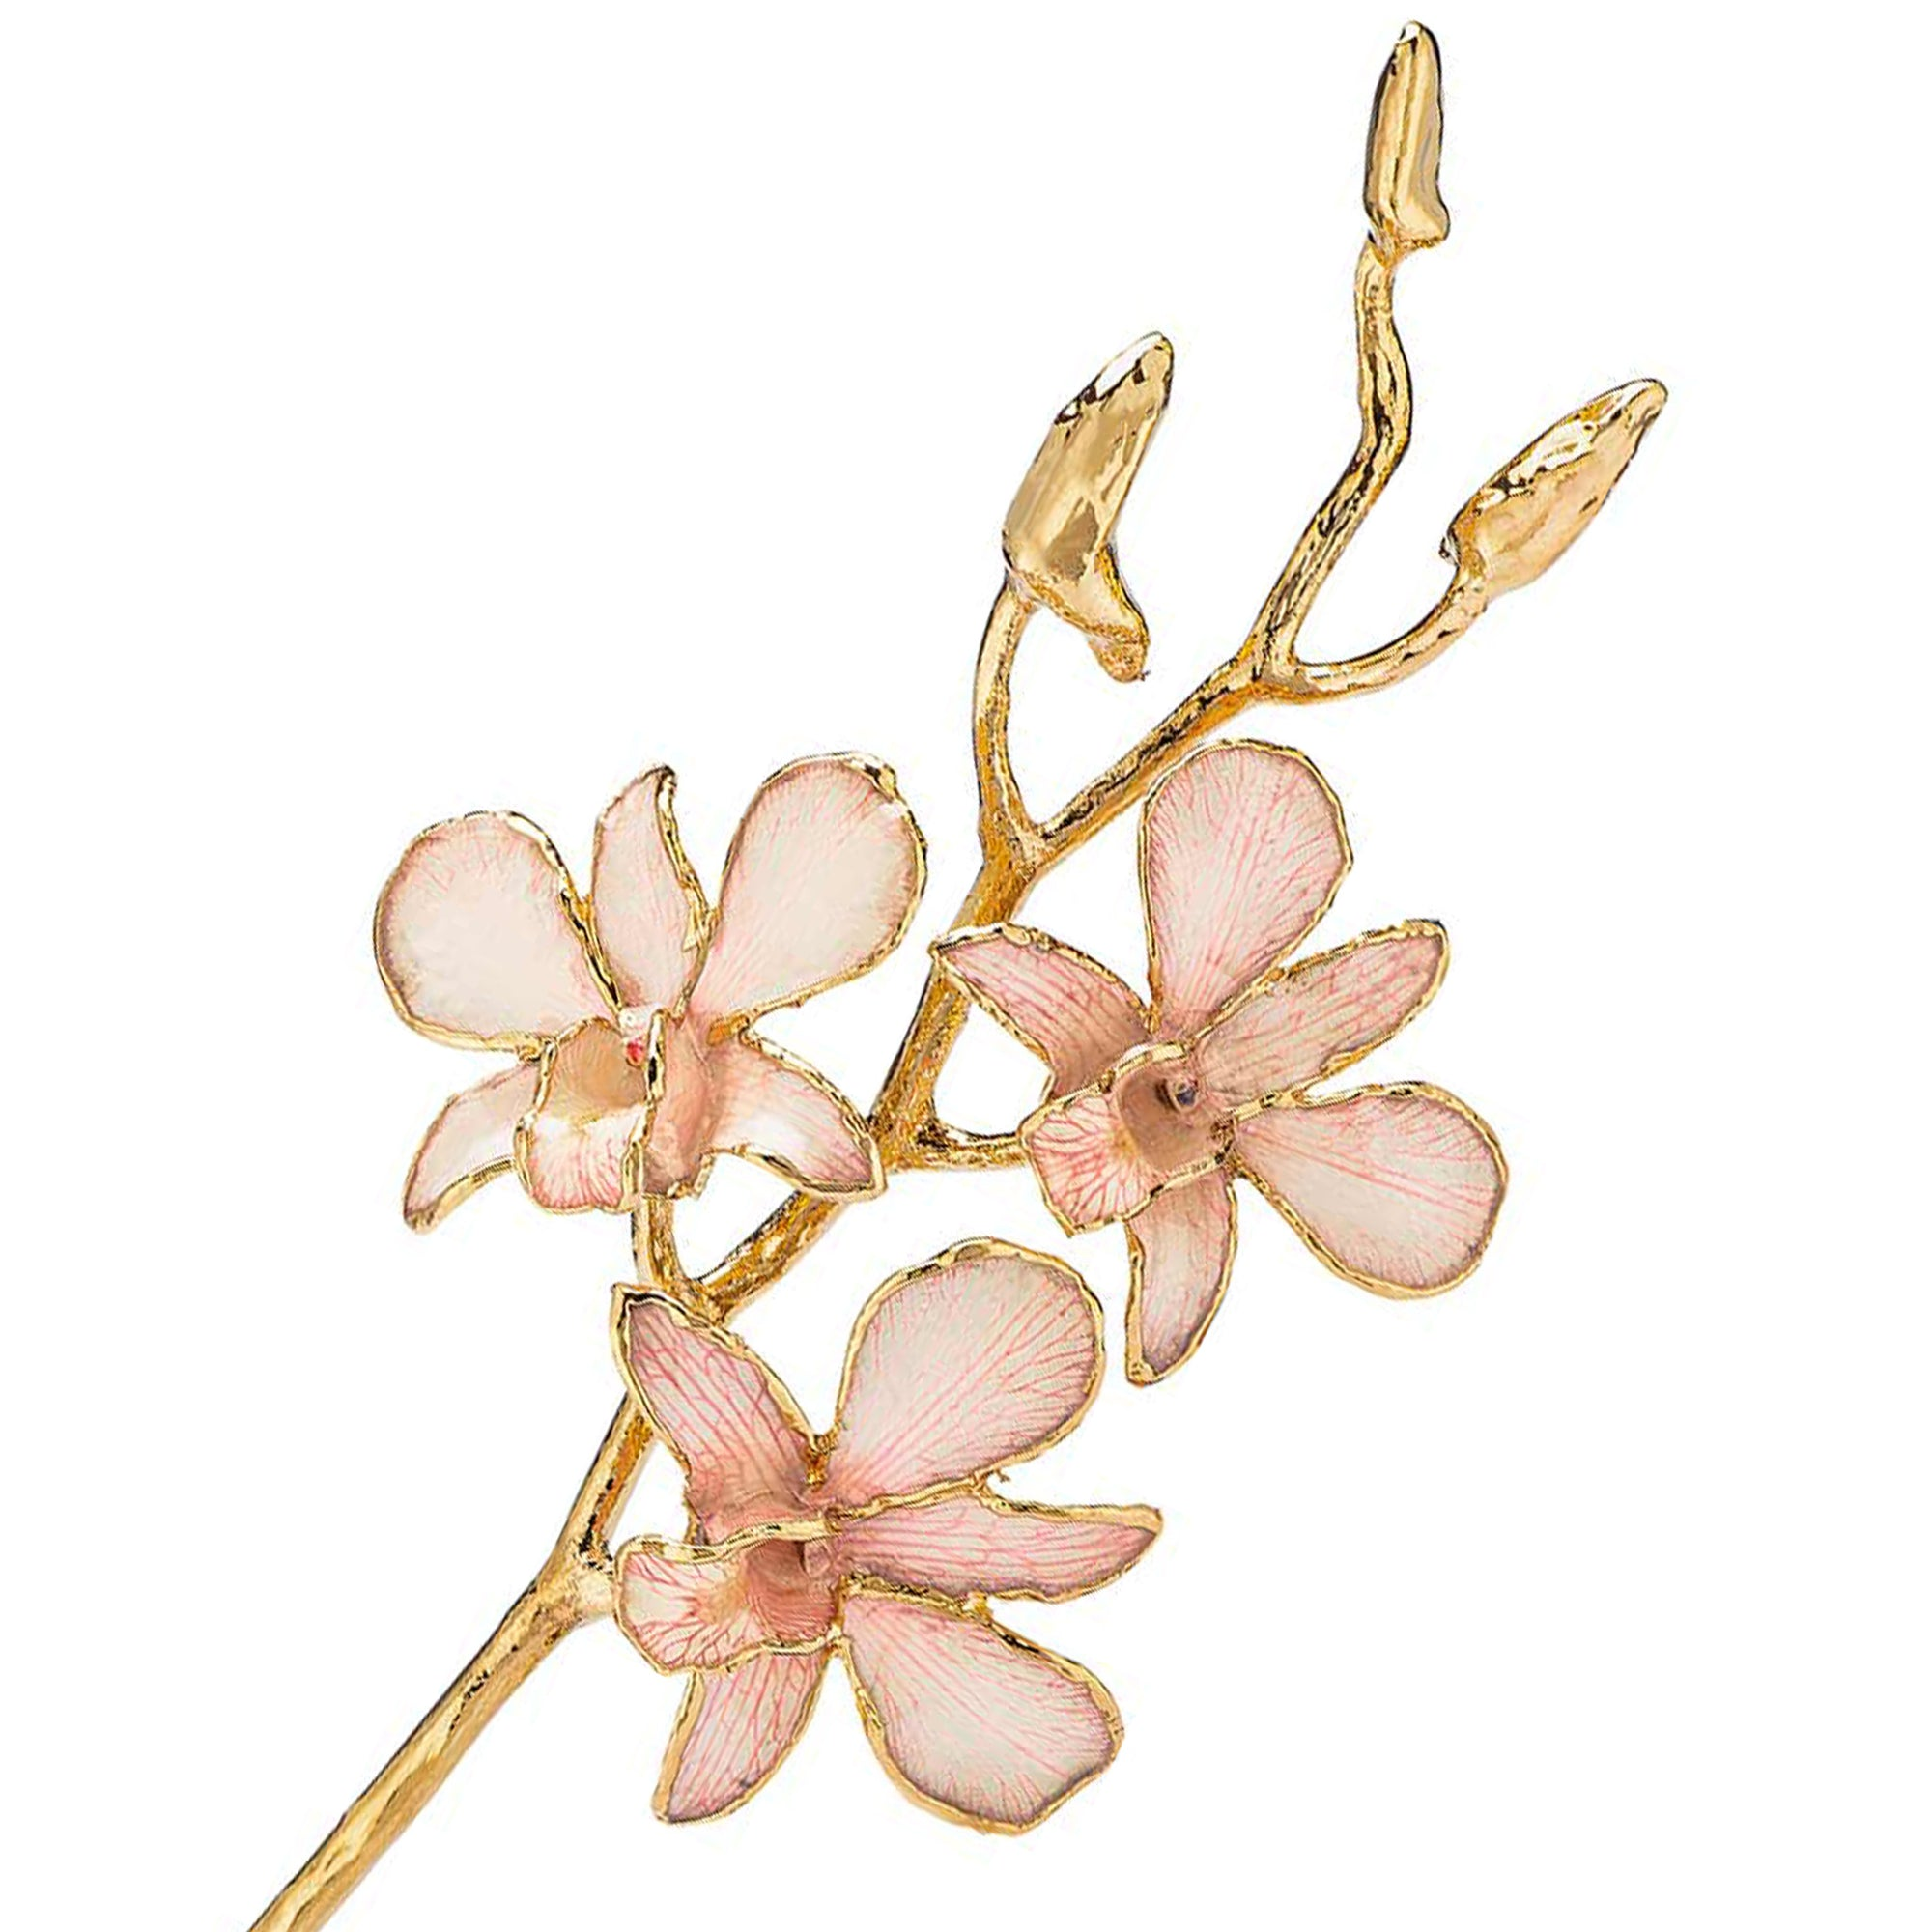 24K Gold Dipped Orchid in Pink Lace view of gold stem and flowers